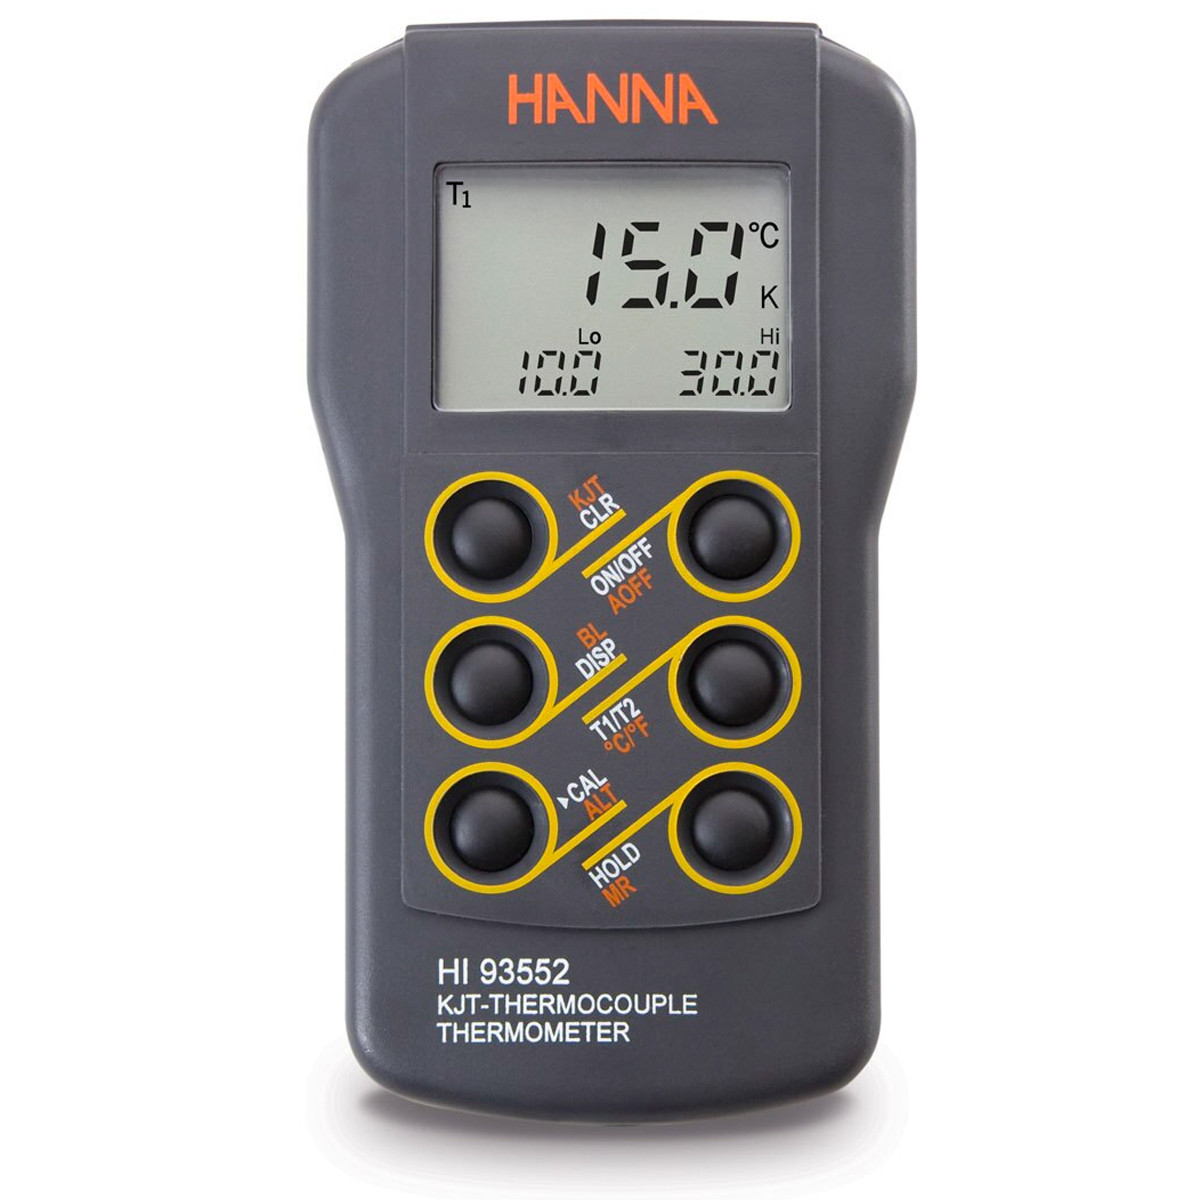 Advanced Dual Channel K, J, T-Type Thermocouple Thermometer